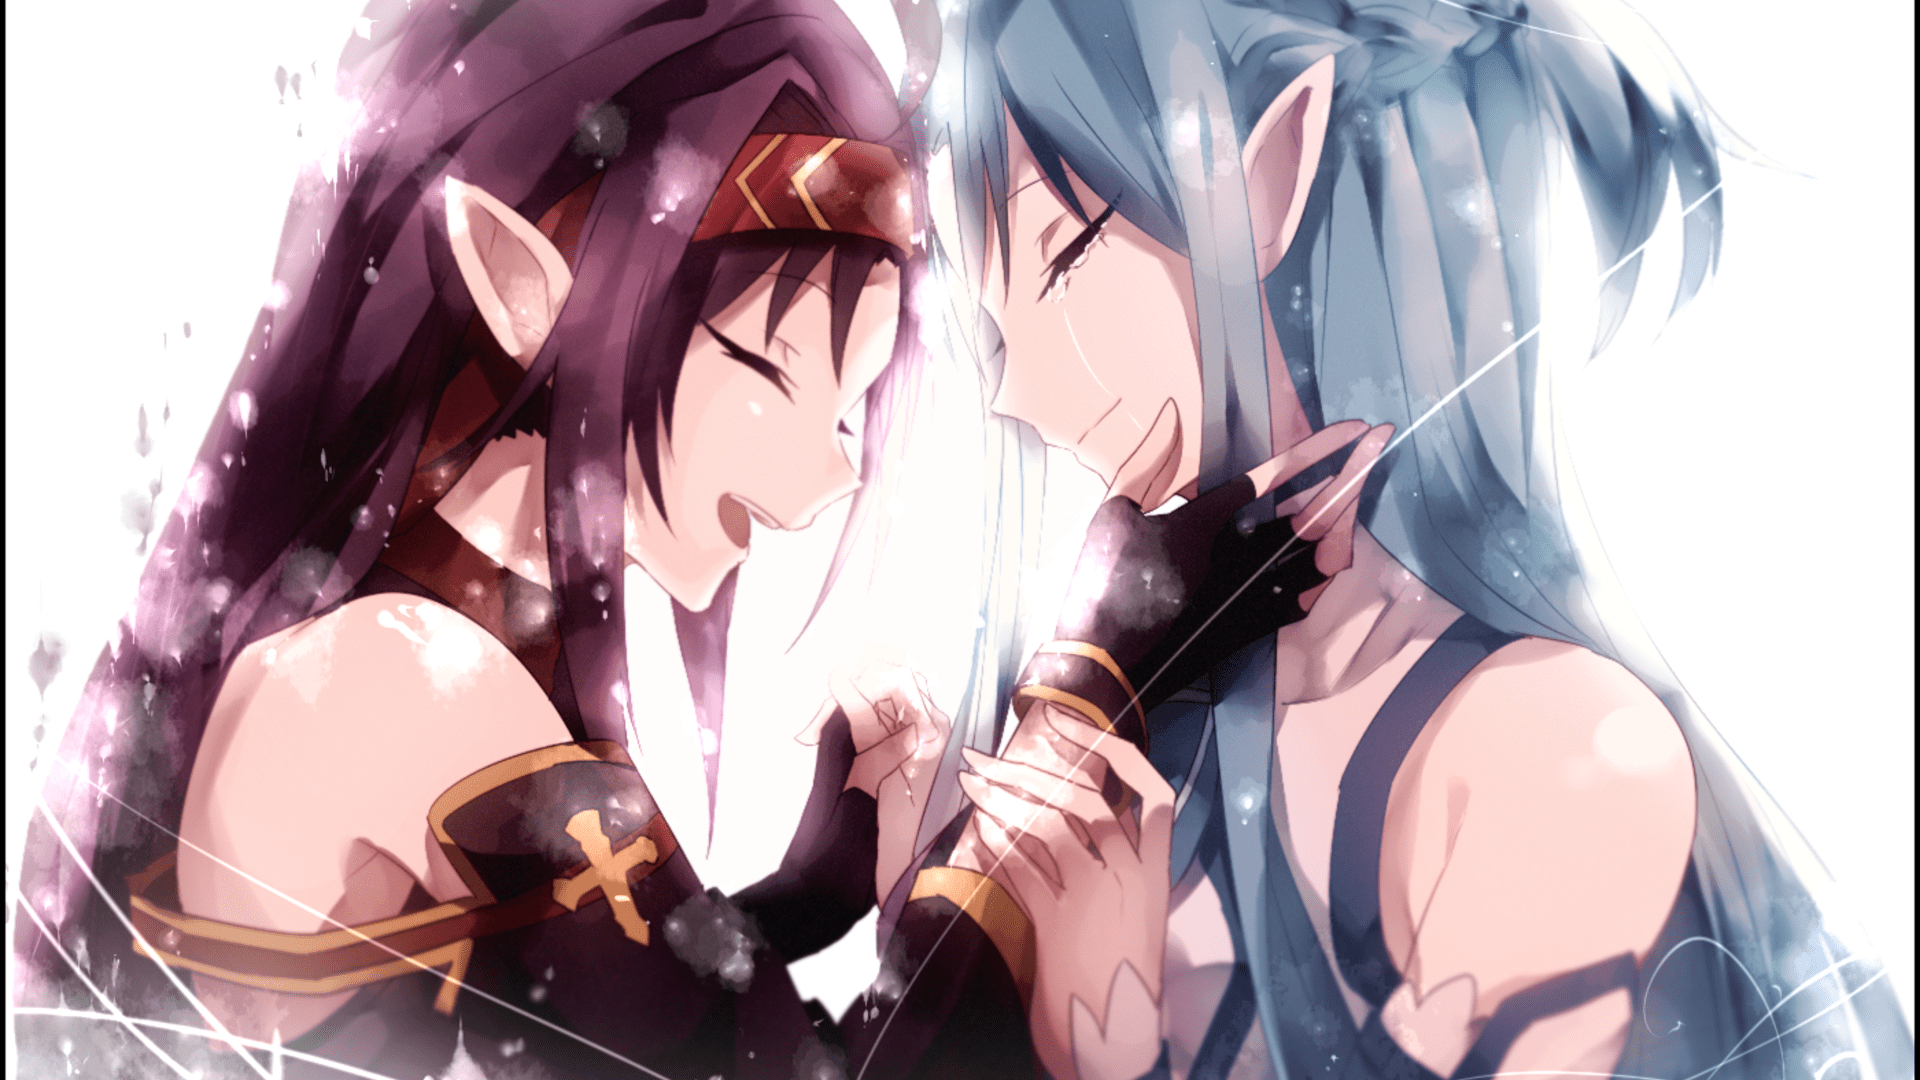 Hd Tube Sword Art Online Ii Full Hd Wallpaper And Background Image